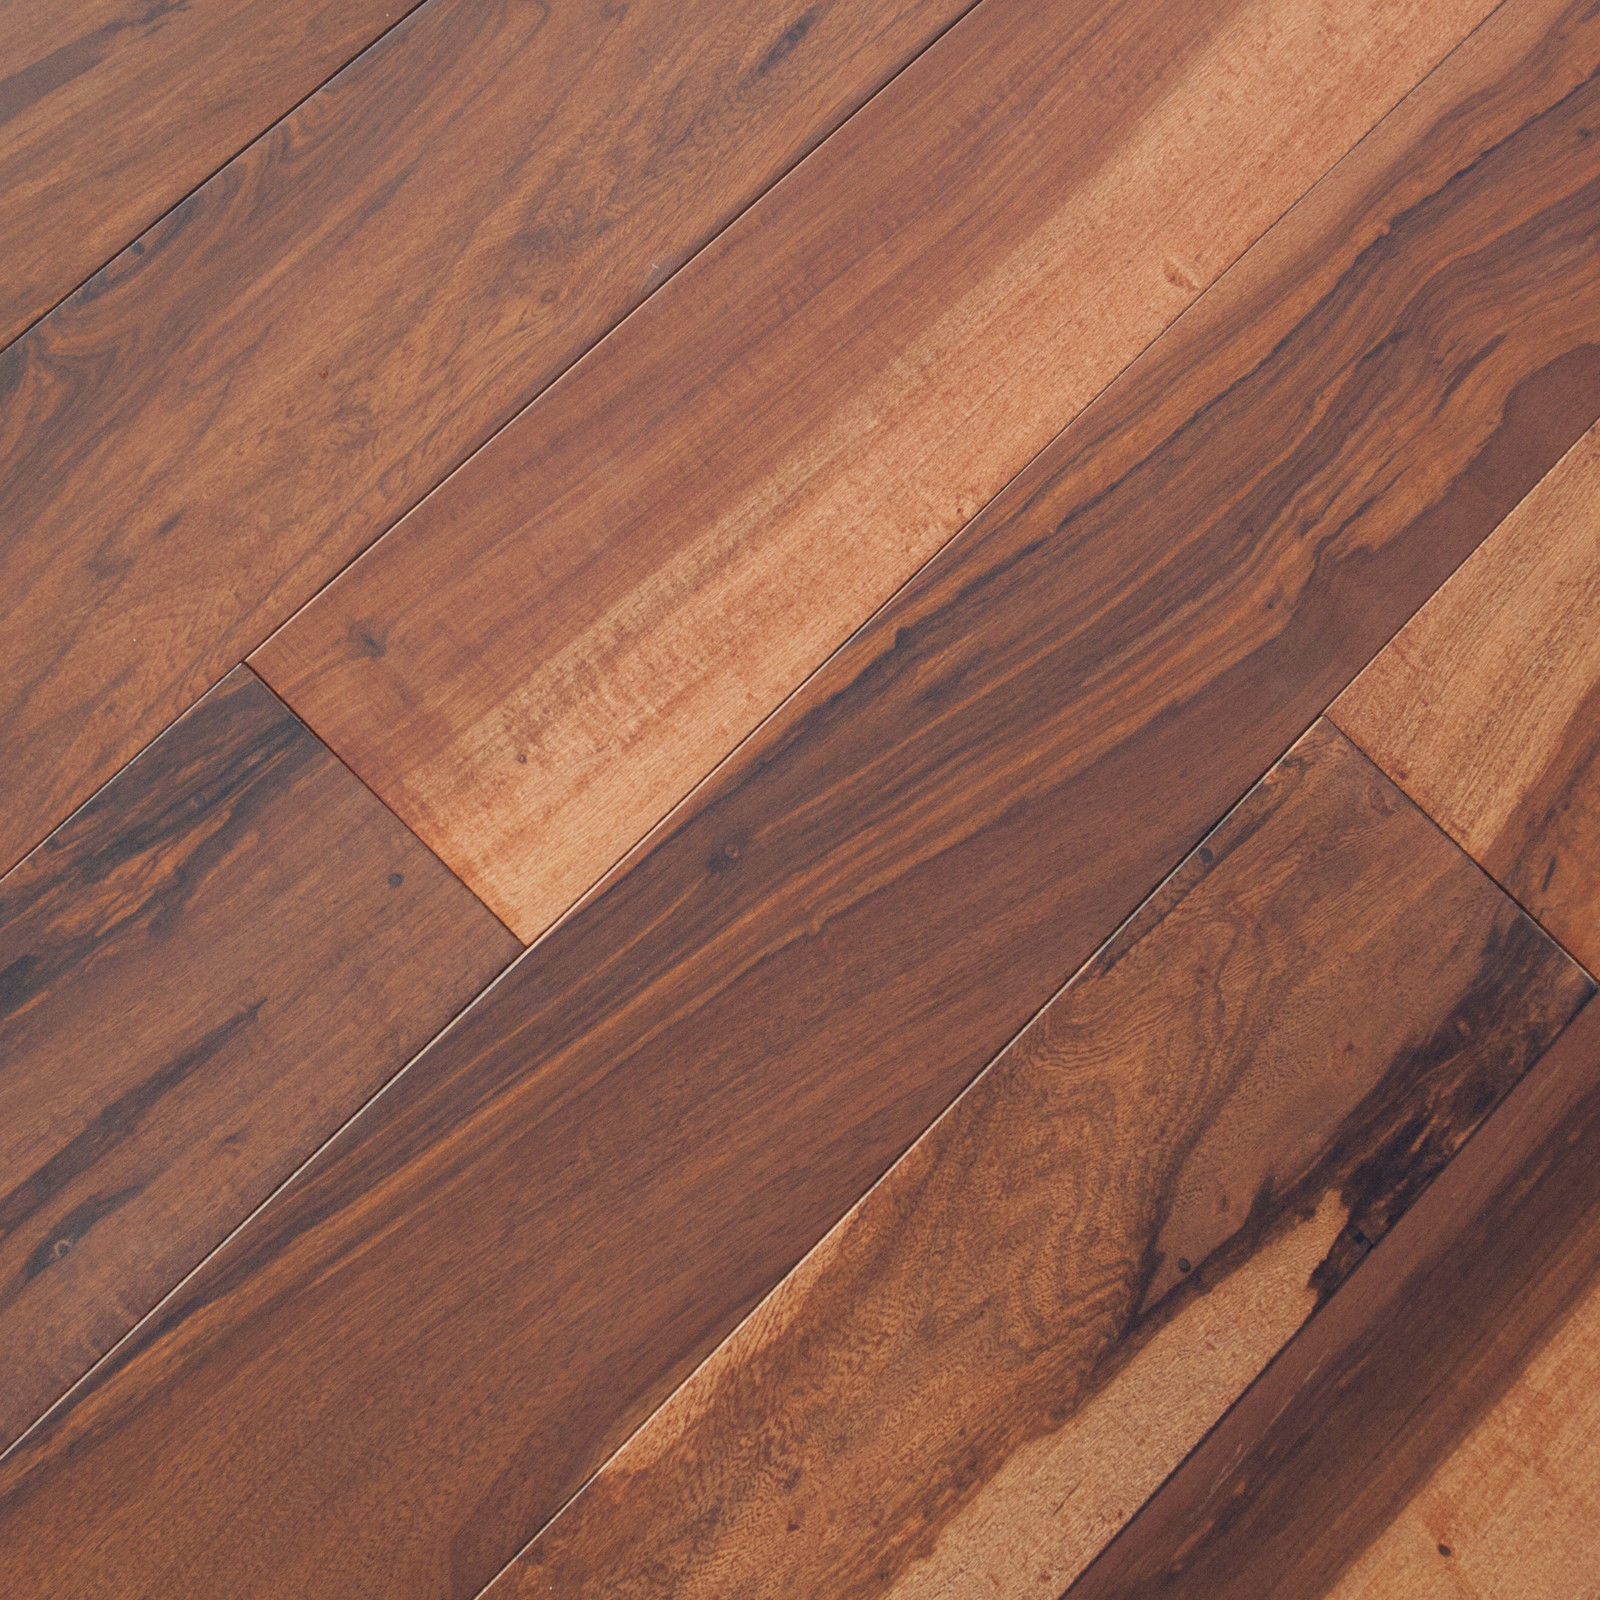 Macchiato pecan chocolate hardwood flooring prefinished for Brazilian pecan hardwood flooring